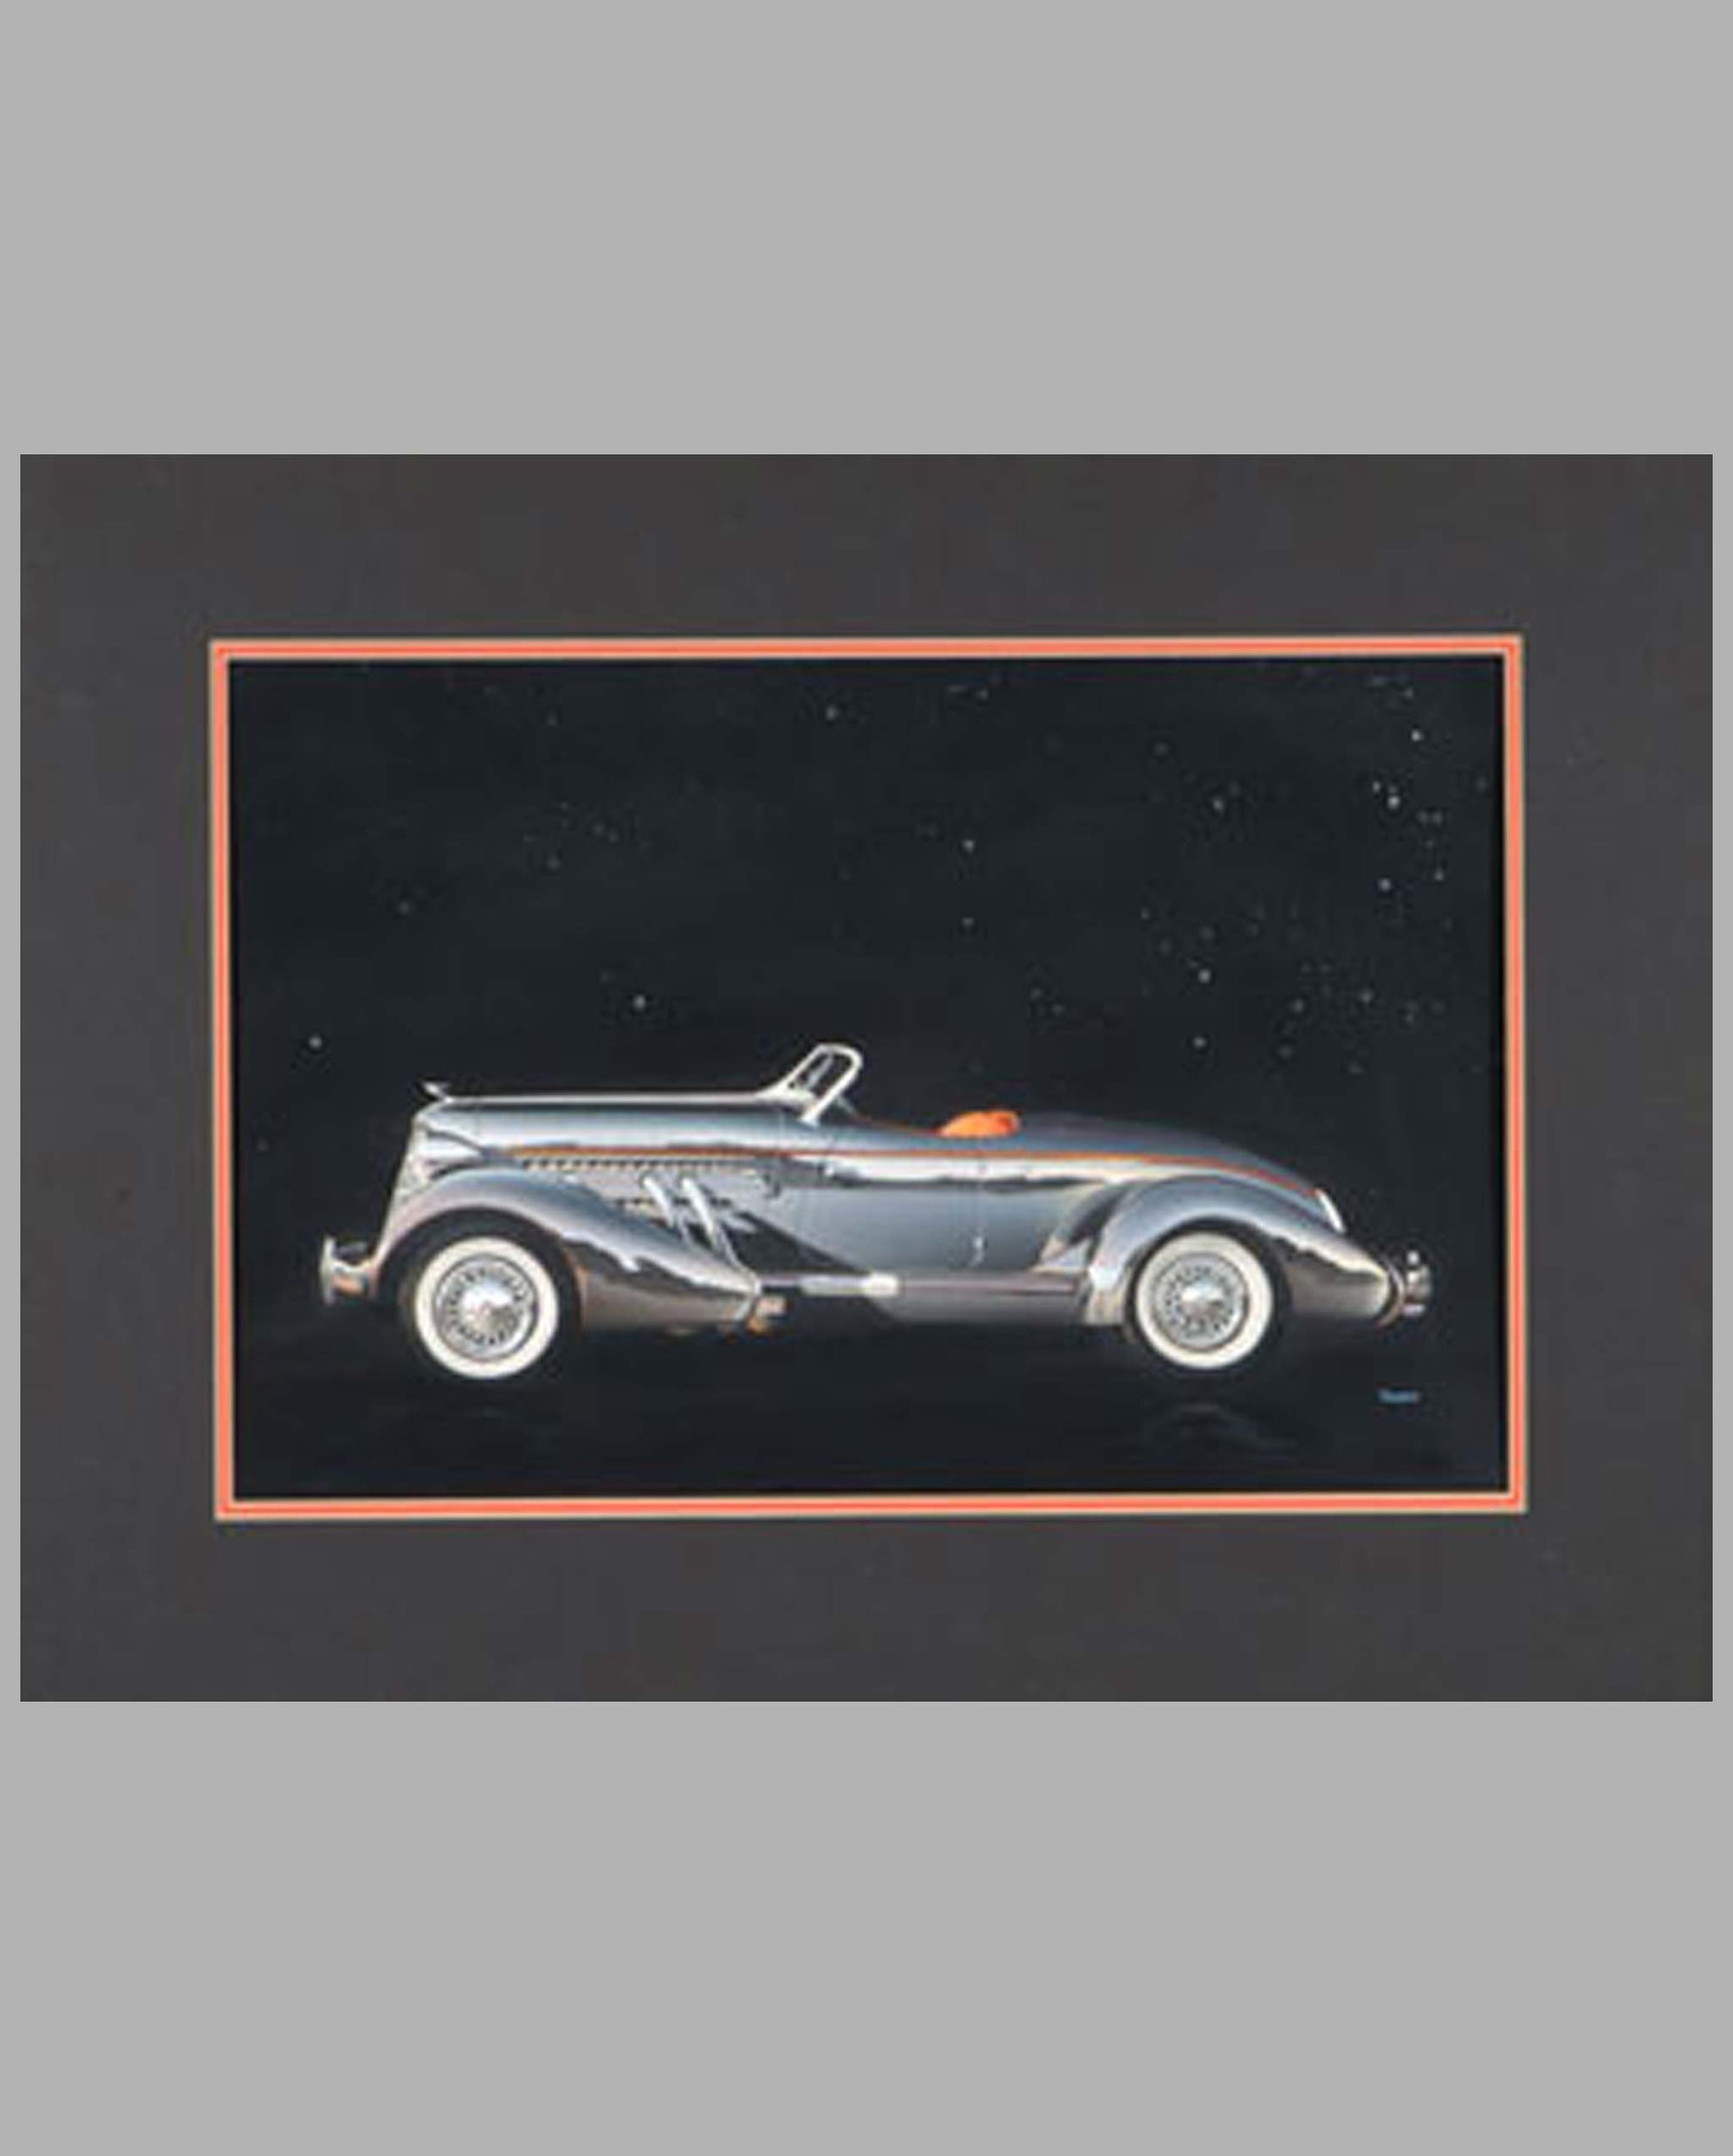 1936 Auburn 852 Speedster gouache by Thierry Thompson